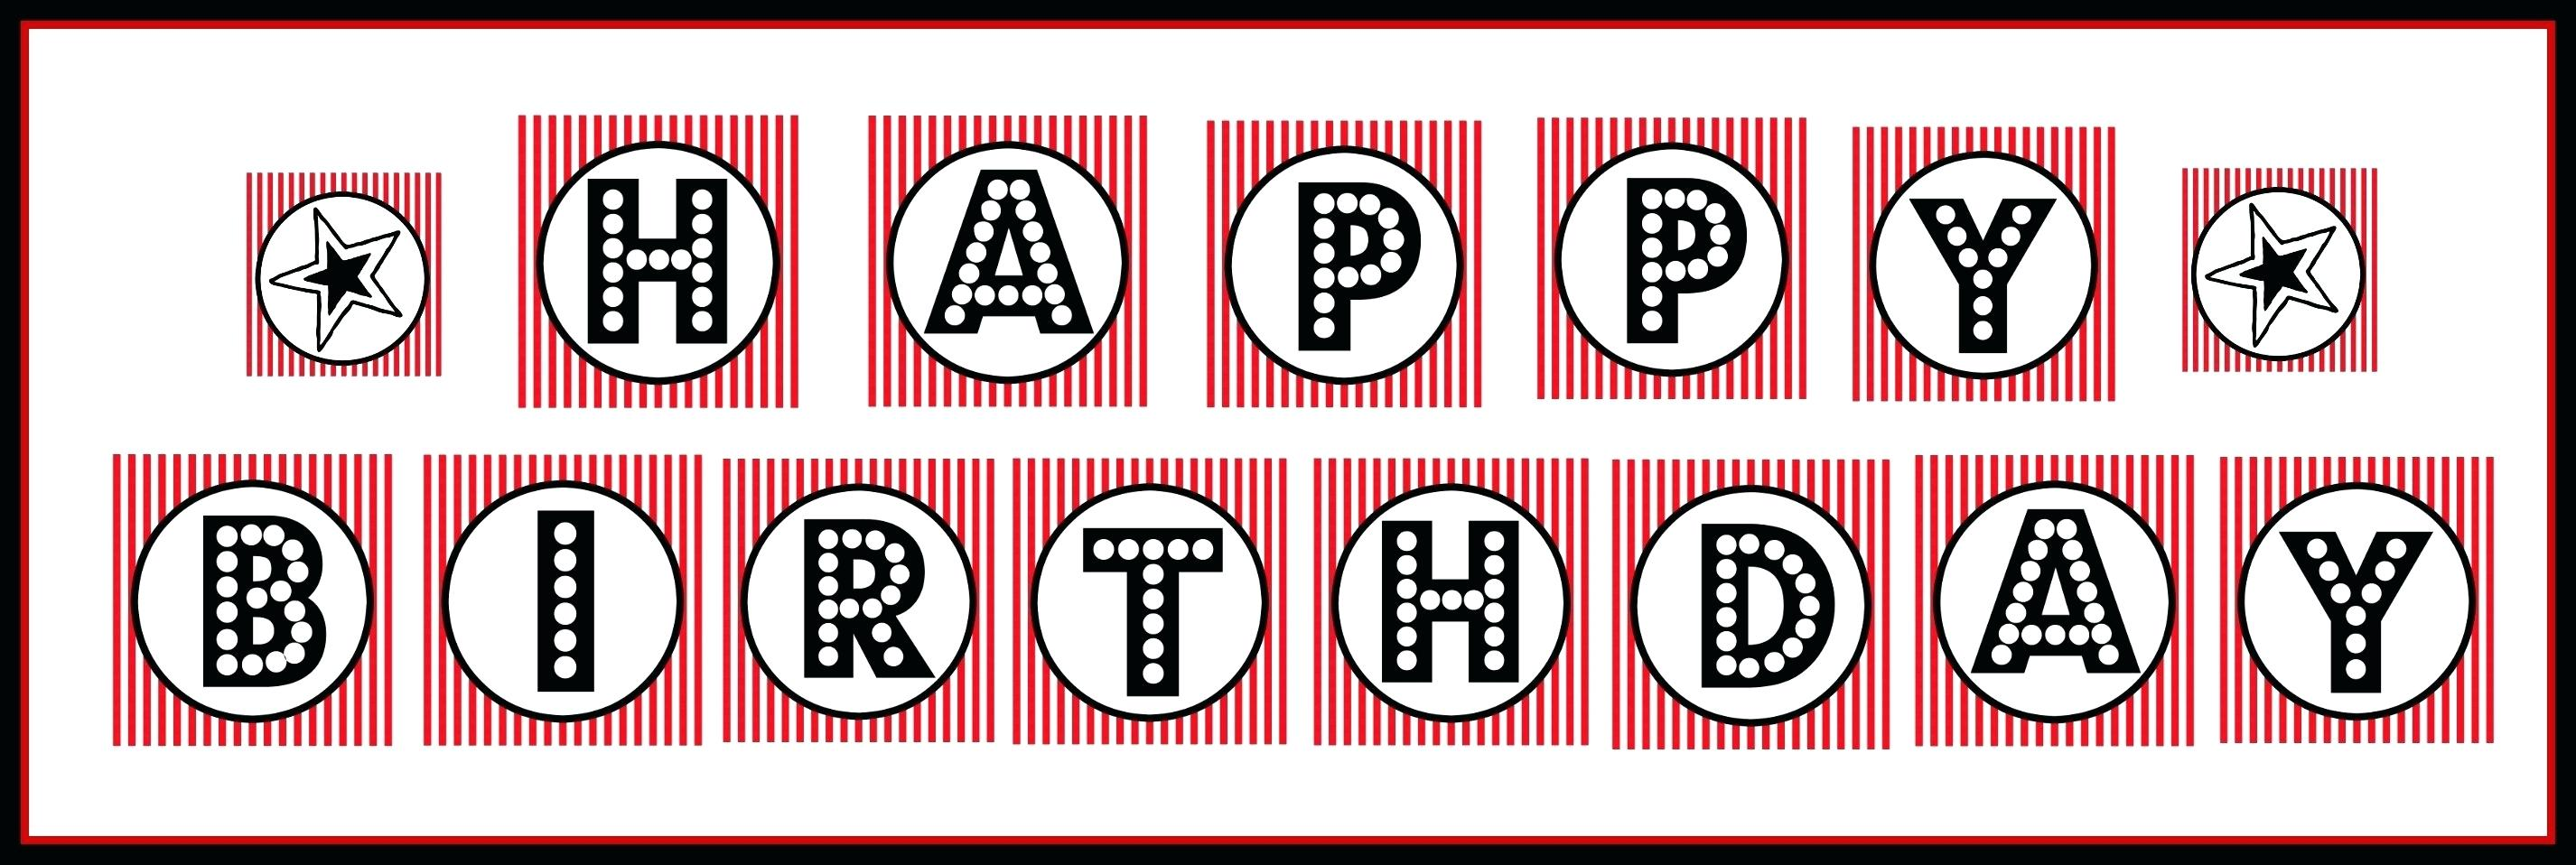 happy birthday poster free template ; happy-birthday-banners-template-free-printable-banner-red-black-photoshop